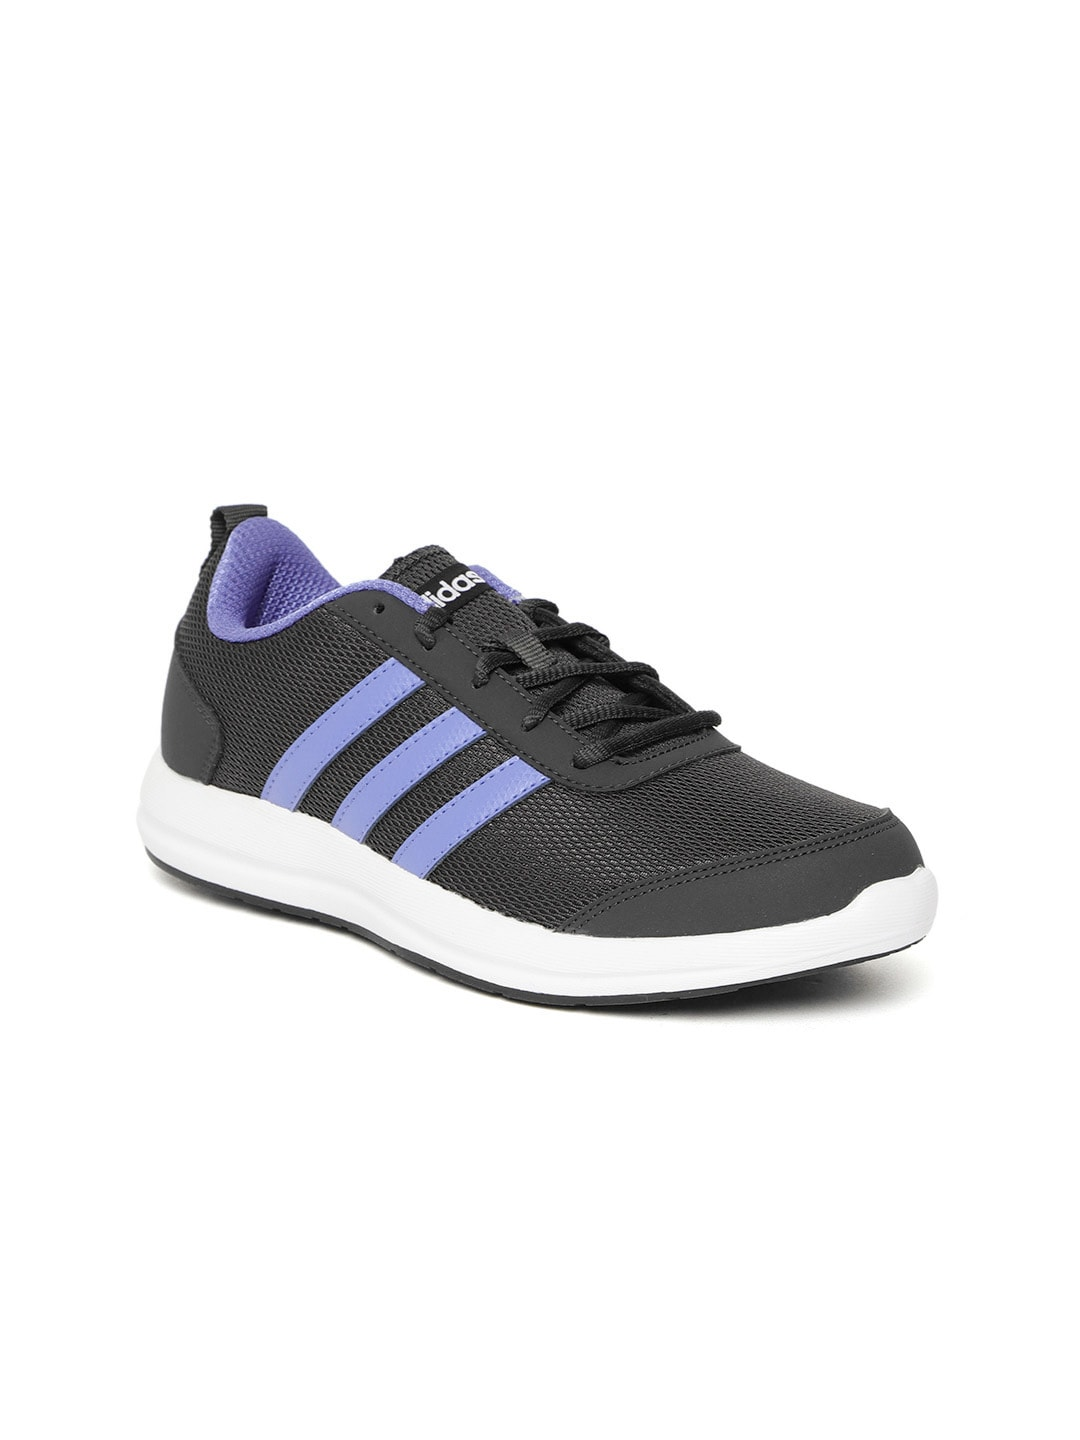 new arrival d3cbf c1aaa Women s Adidas Shoes - Buy Adidas Shoes for Women Online in India